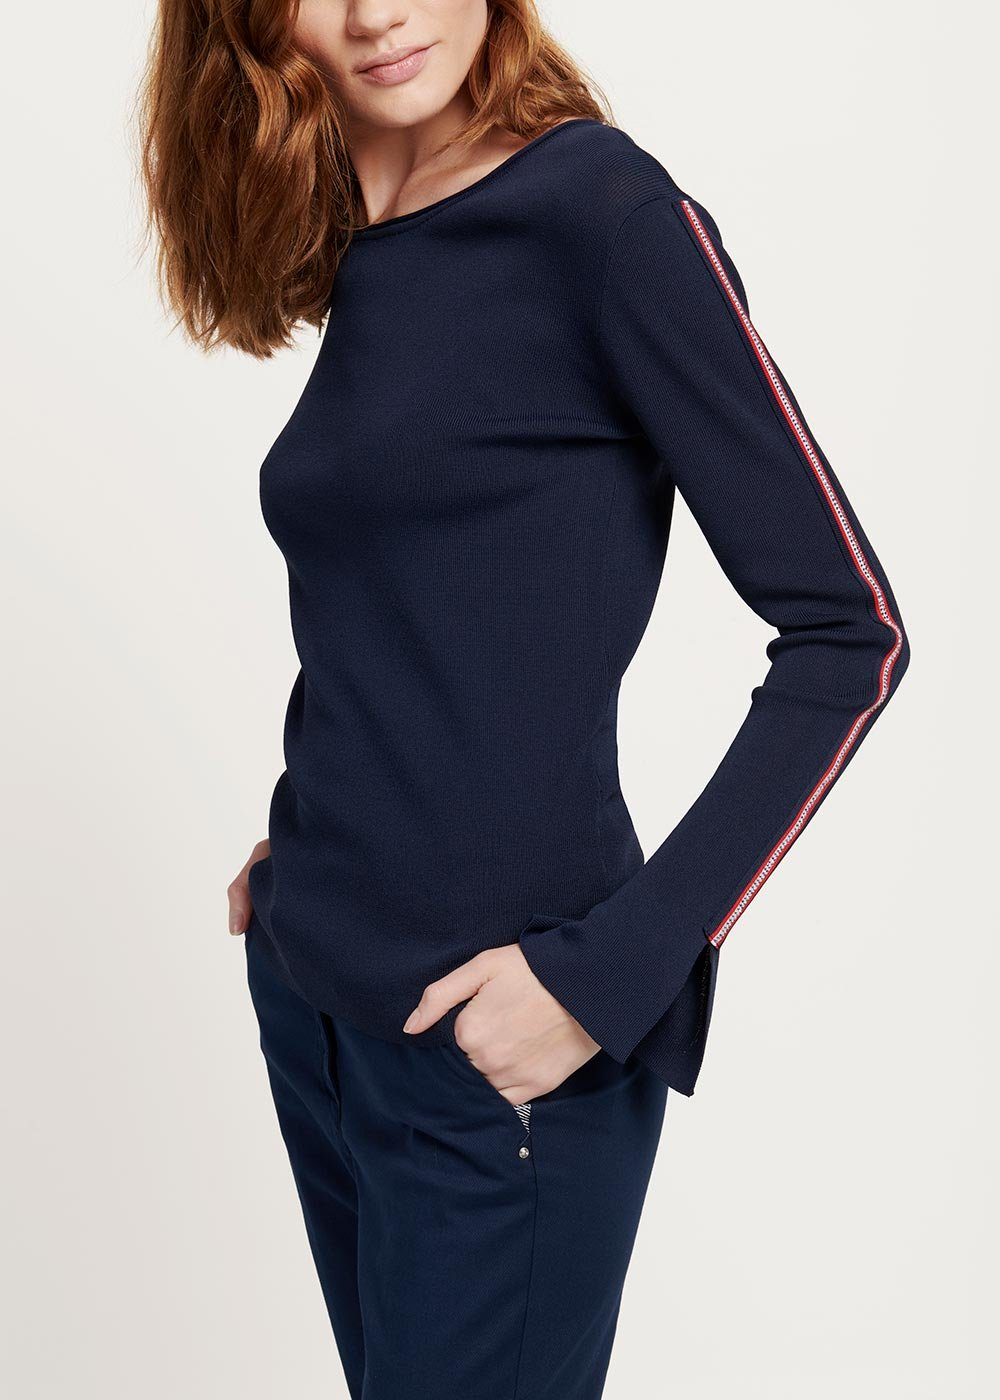 Melyssa sweater with ribbon details - Medium Blue - Woman